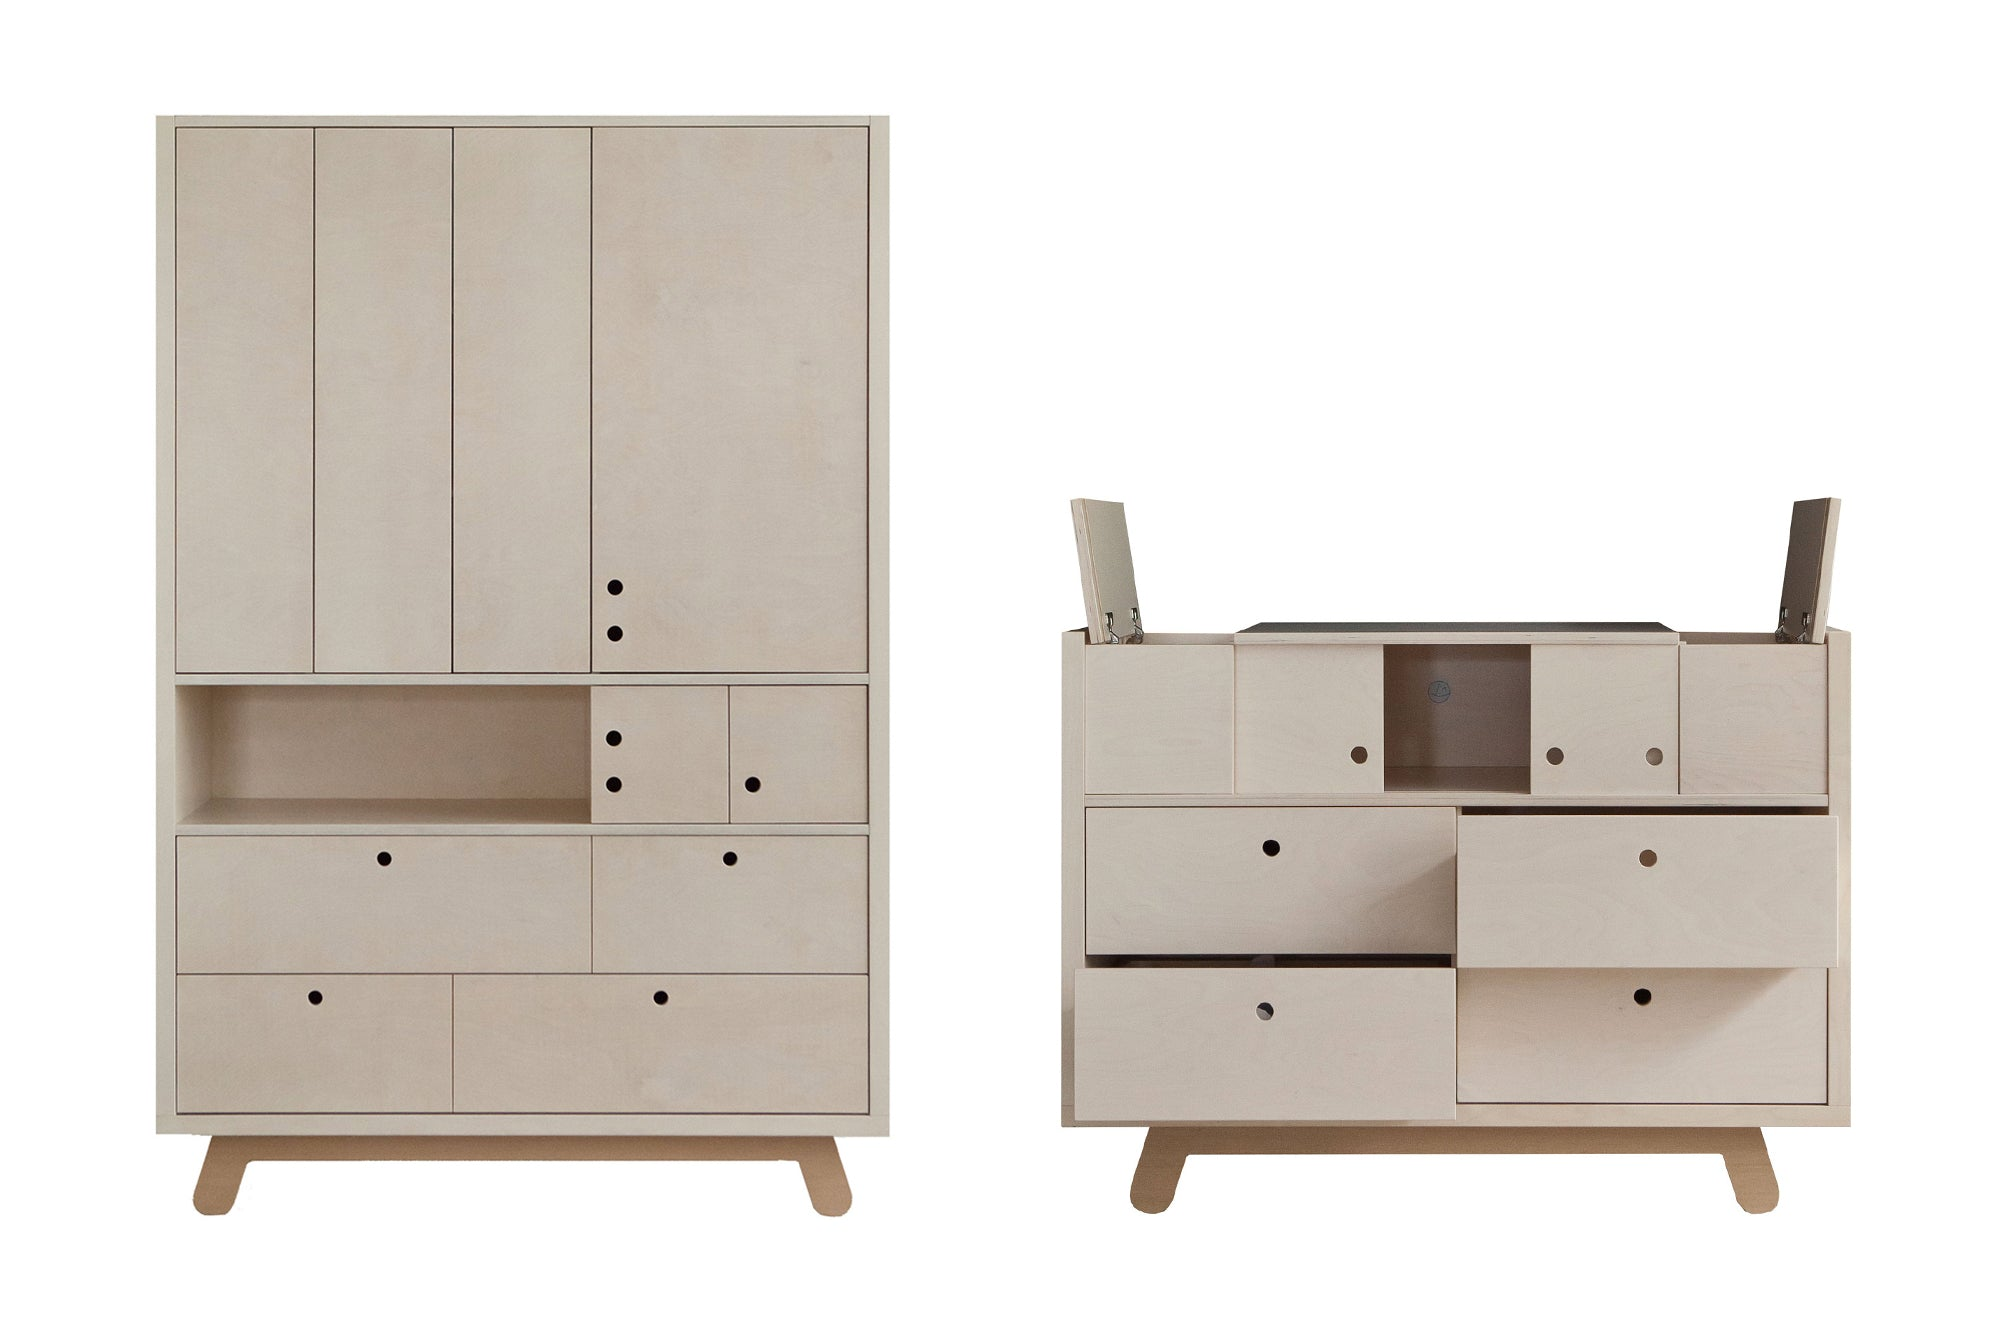 Peekaboo Nursery Furniture by Kutikai, available at Bobby Rabbit.